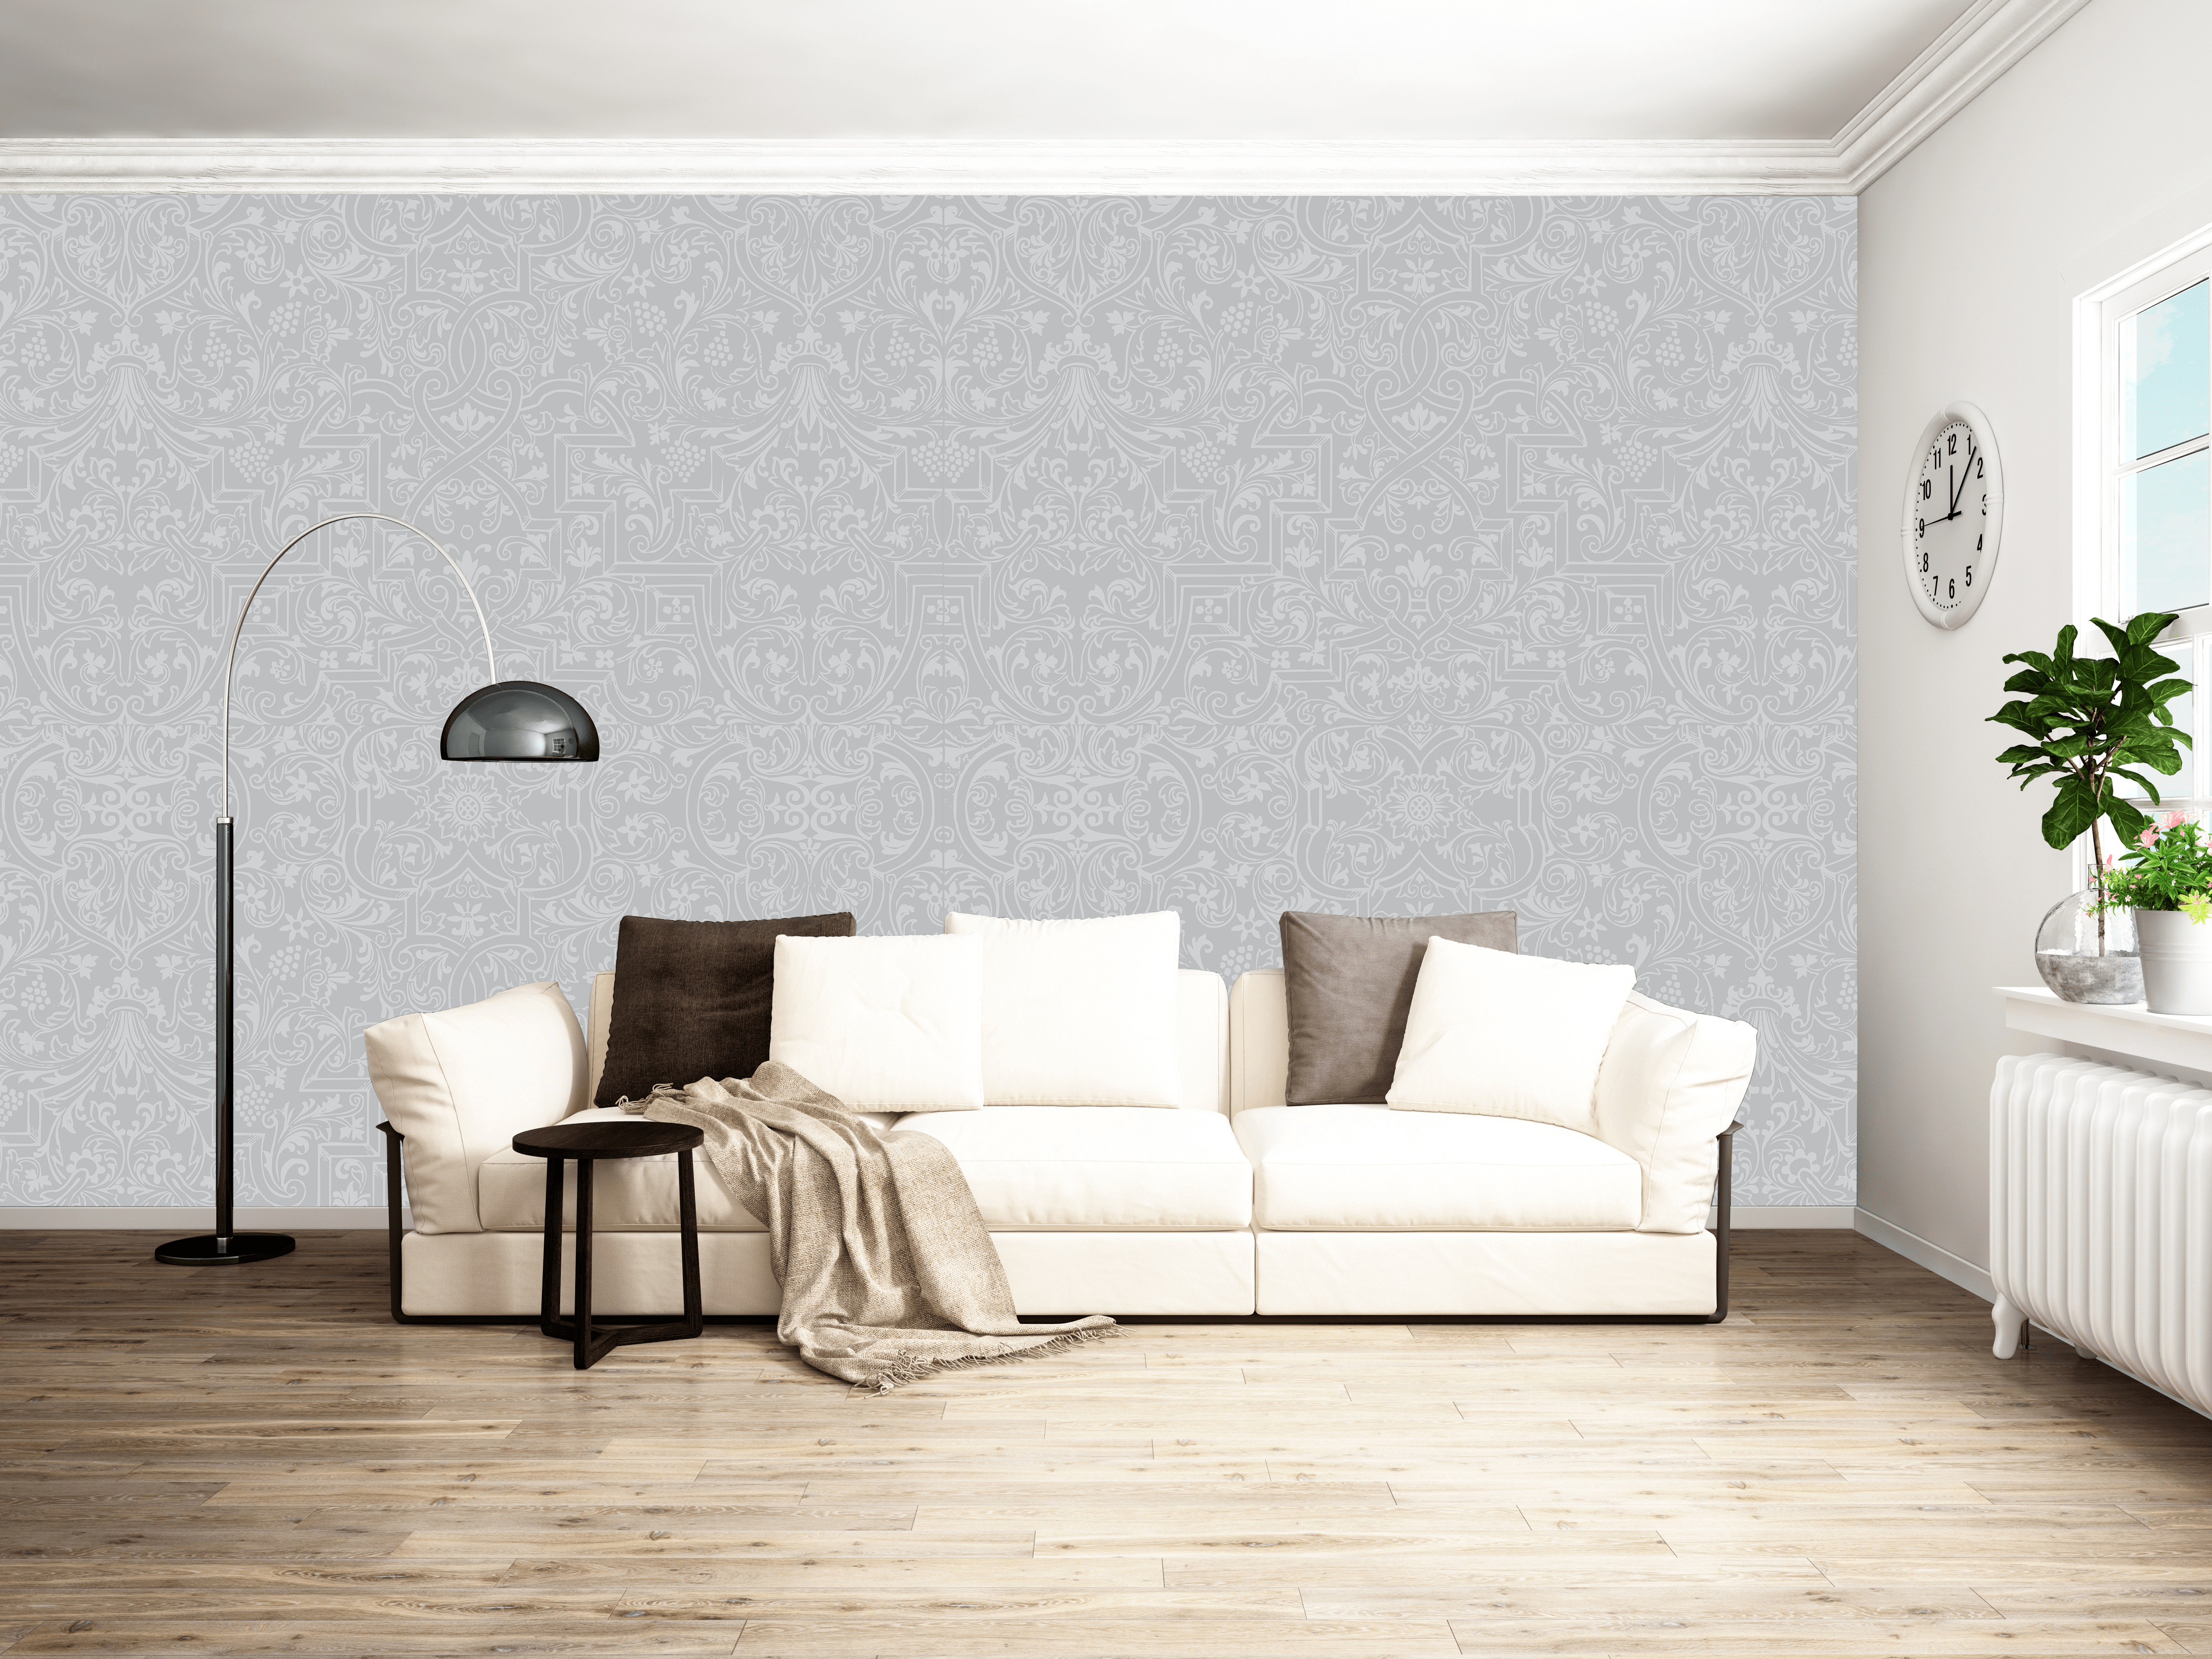 Choose A Timeless Wallpaper Design: 6 Top Tips From Our Experts